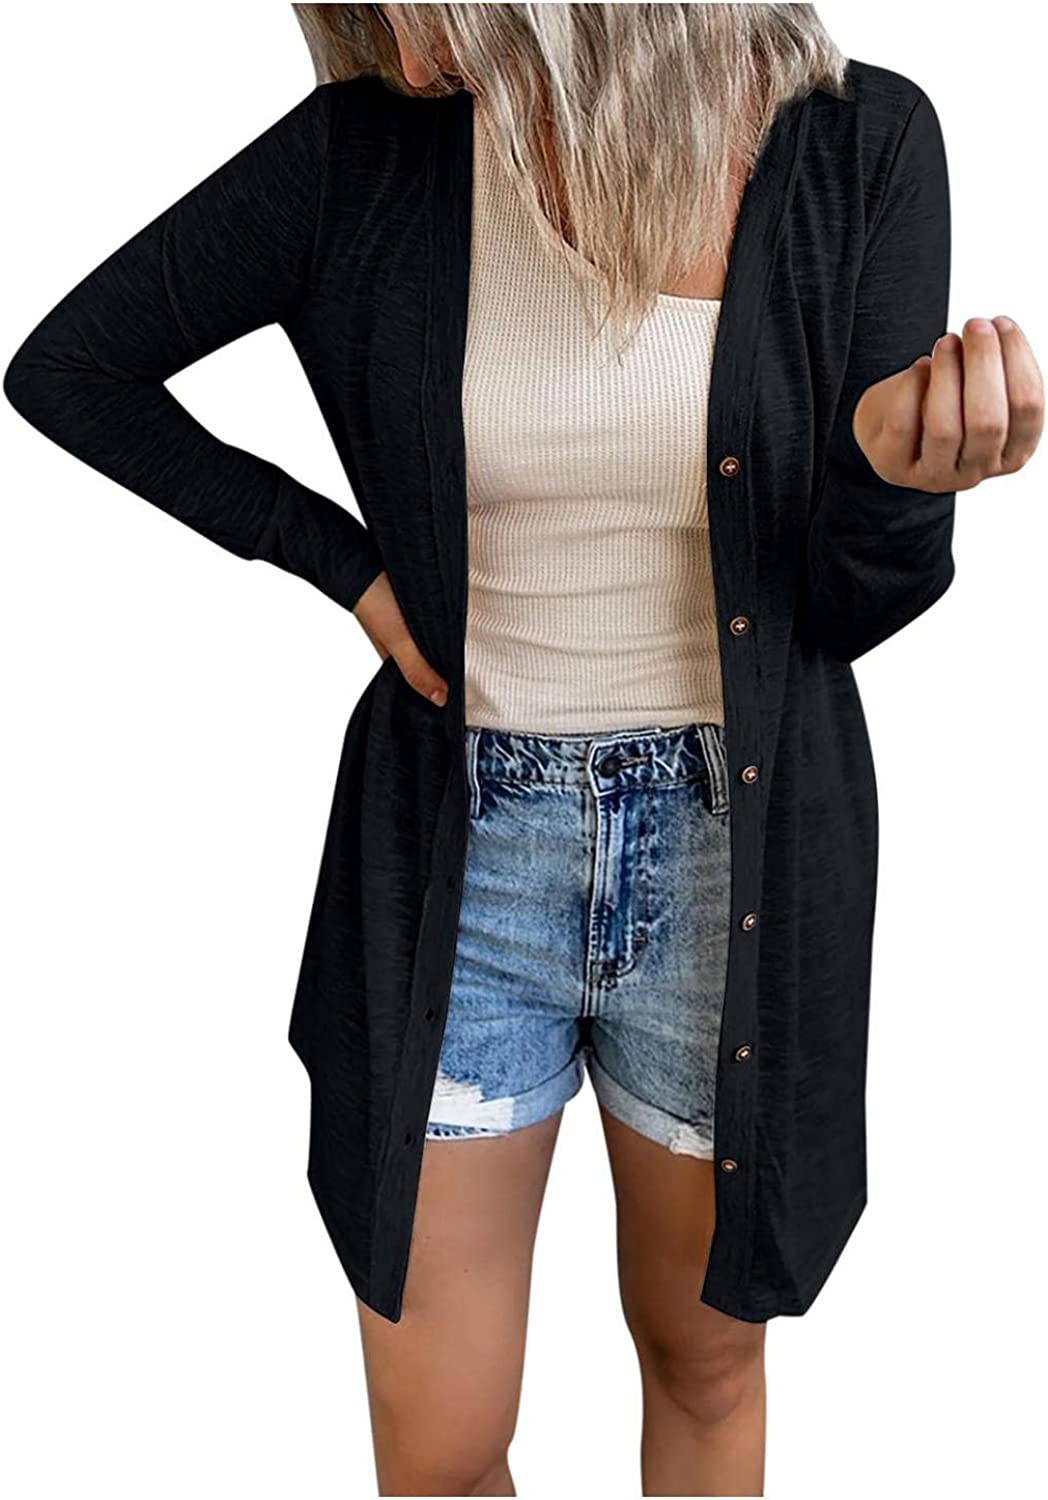 Cardigan for Women Plus Size, Women's Long Sleeve Knit Sweater Open Front Cardigan Button Loose Outerwear